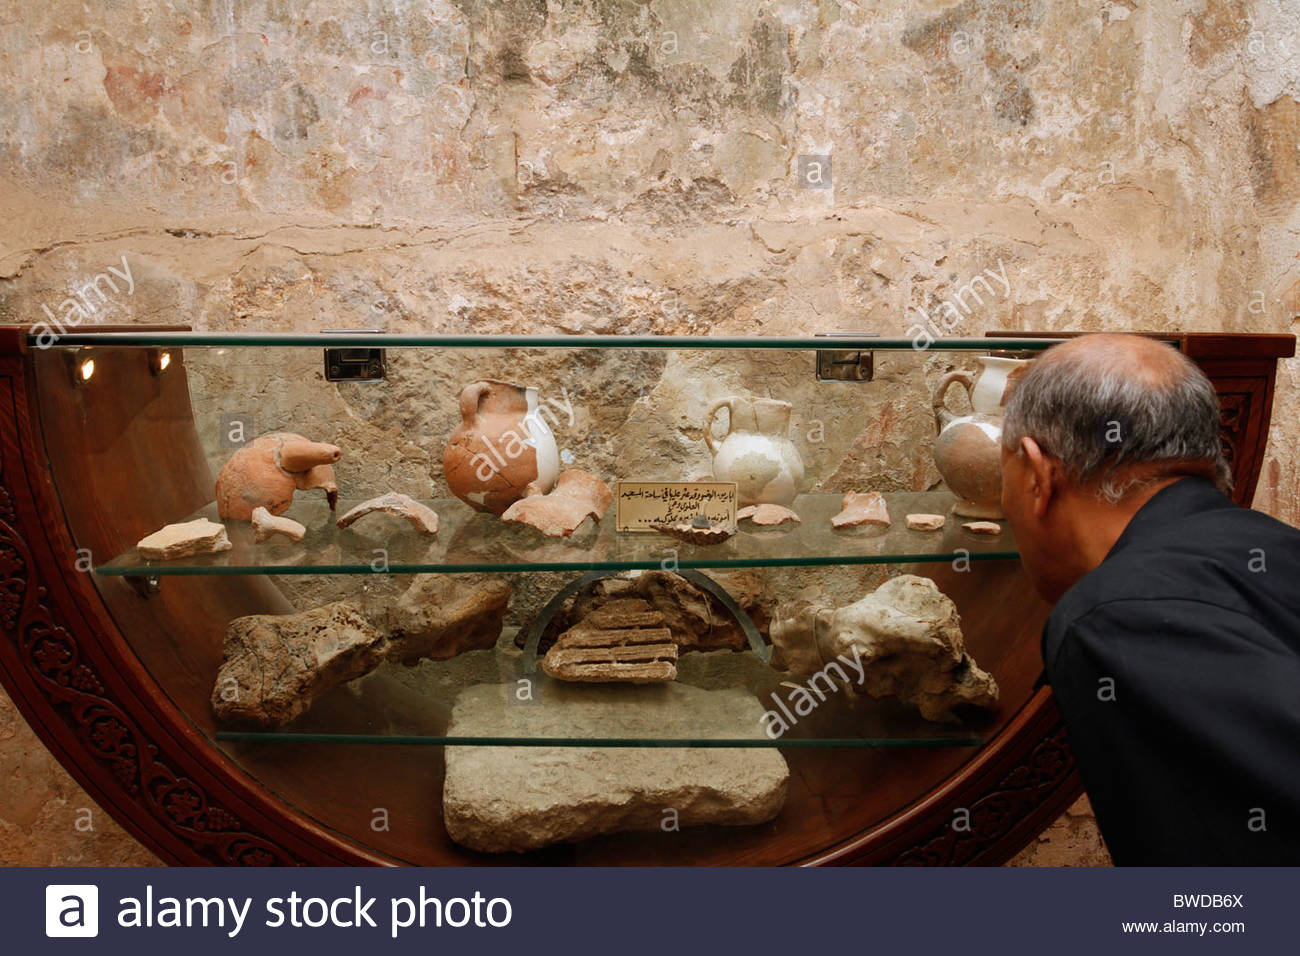 Cave of the Seven Sleepers Amman, Artifacts inside the Cave of the Seven Sleepers near Amman in ...